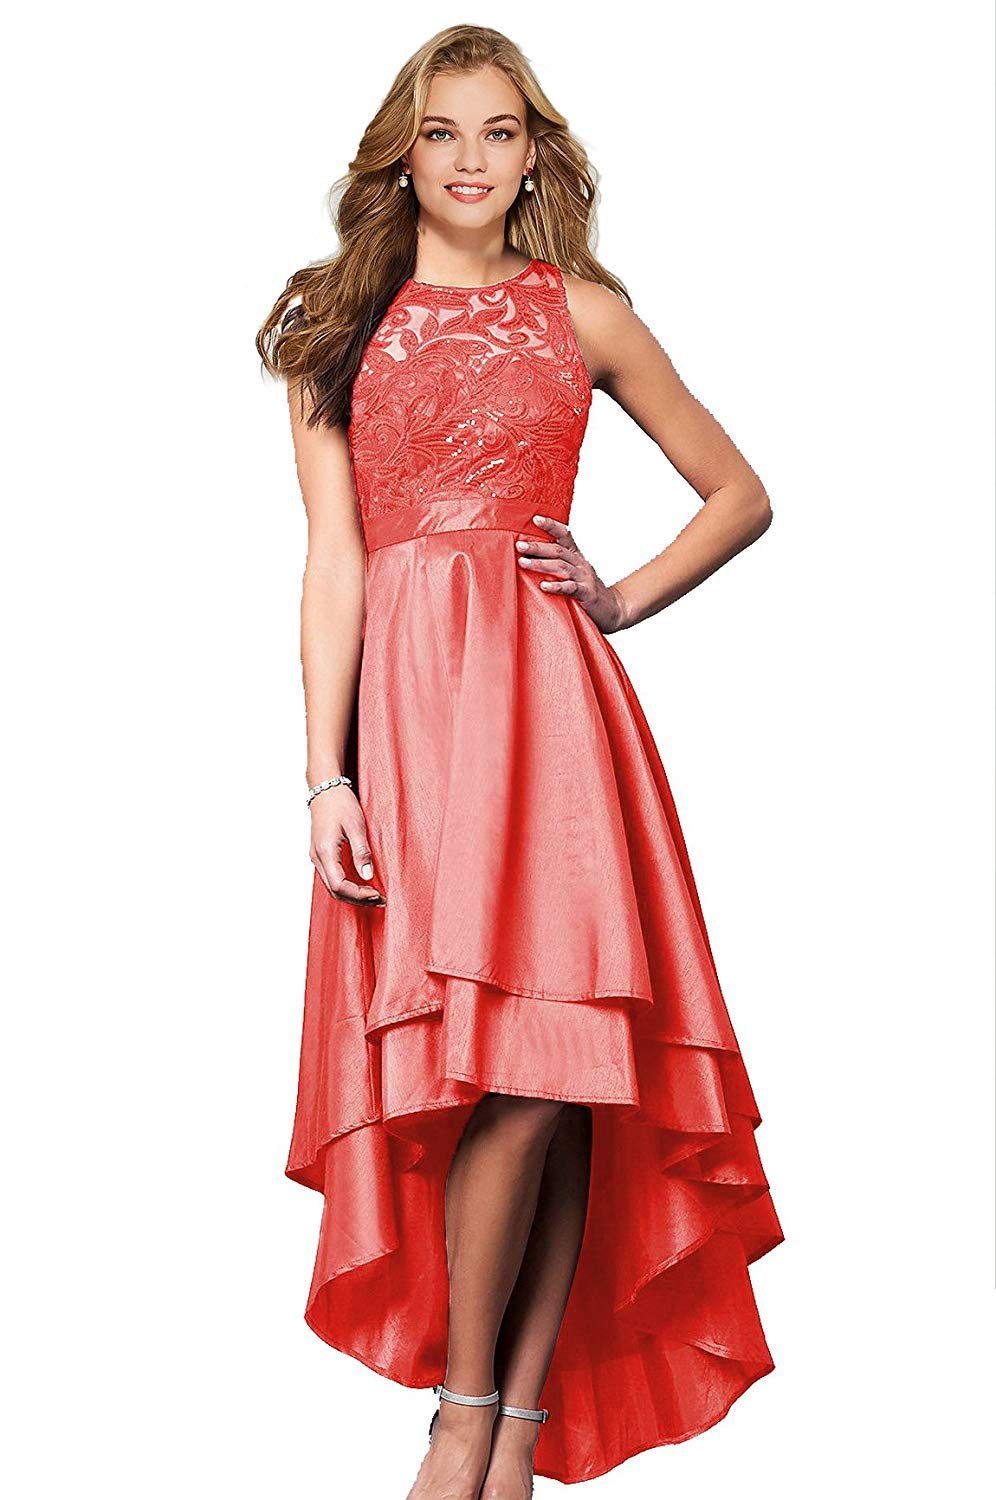 d36c8f2f74 ... Lace Bridesmaid Dresses High Low Satin Prom Dress Evening Gowns Formal  B080.   